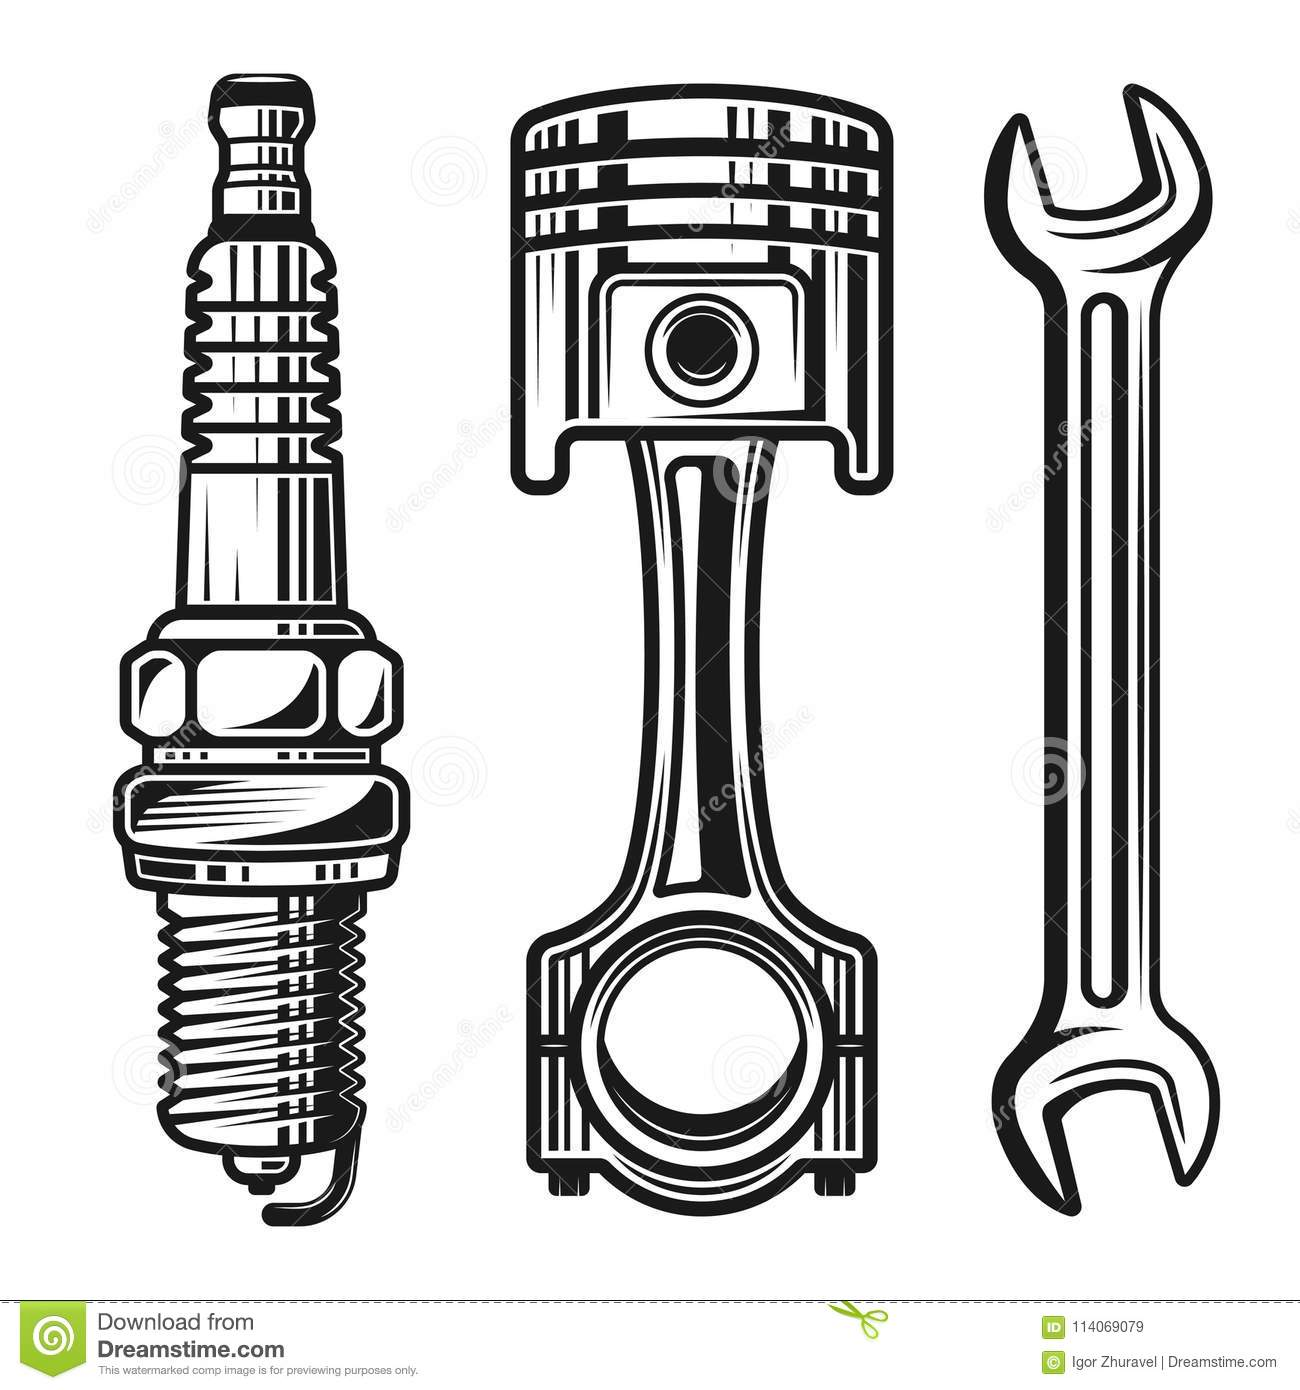 Motorcycle Parts In Delaware Mail: Motorcycle Parts Stock Illustrations